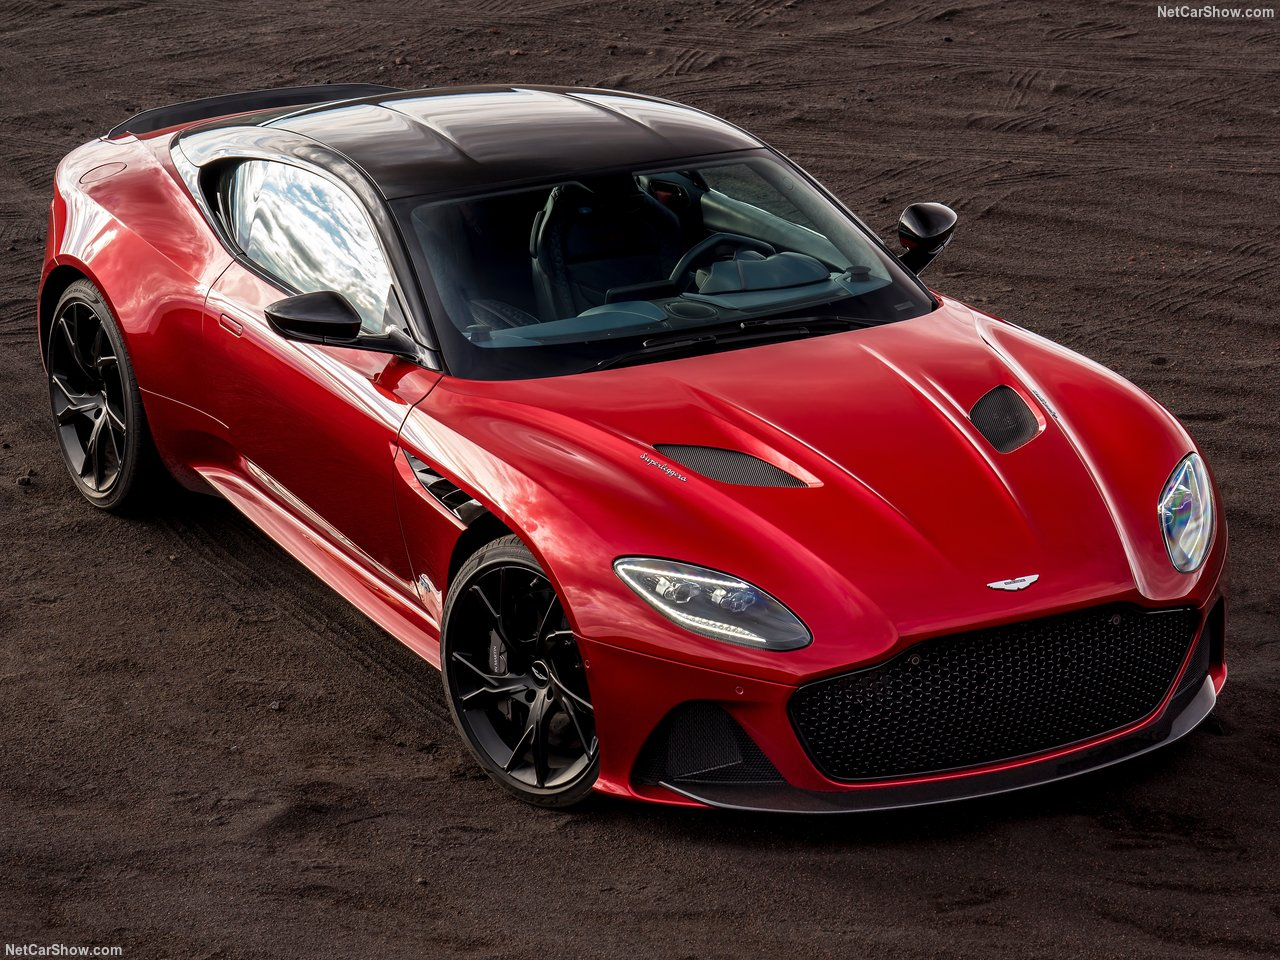 Aston Martin DBS Superleggera: A Brute In A Suit 35